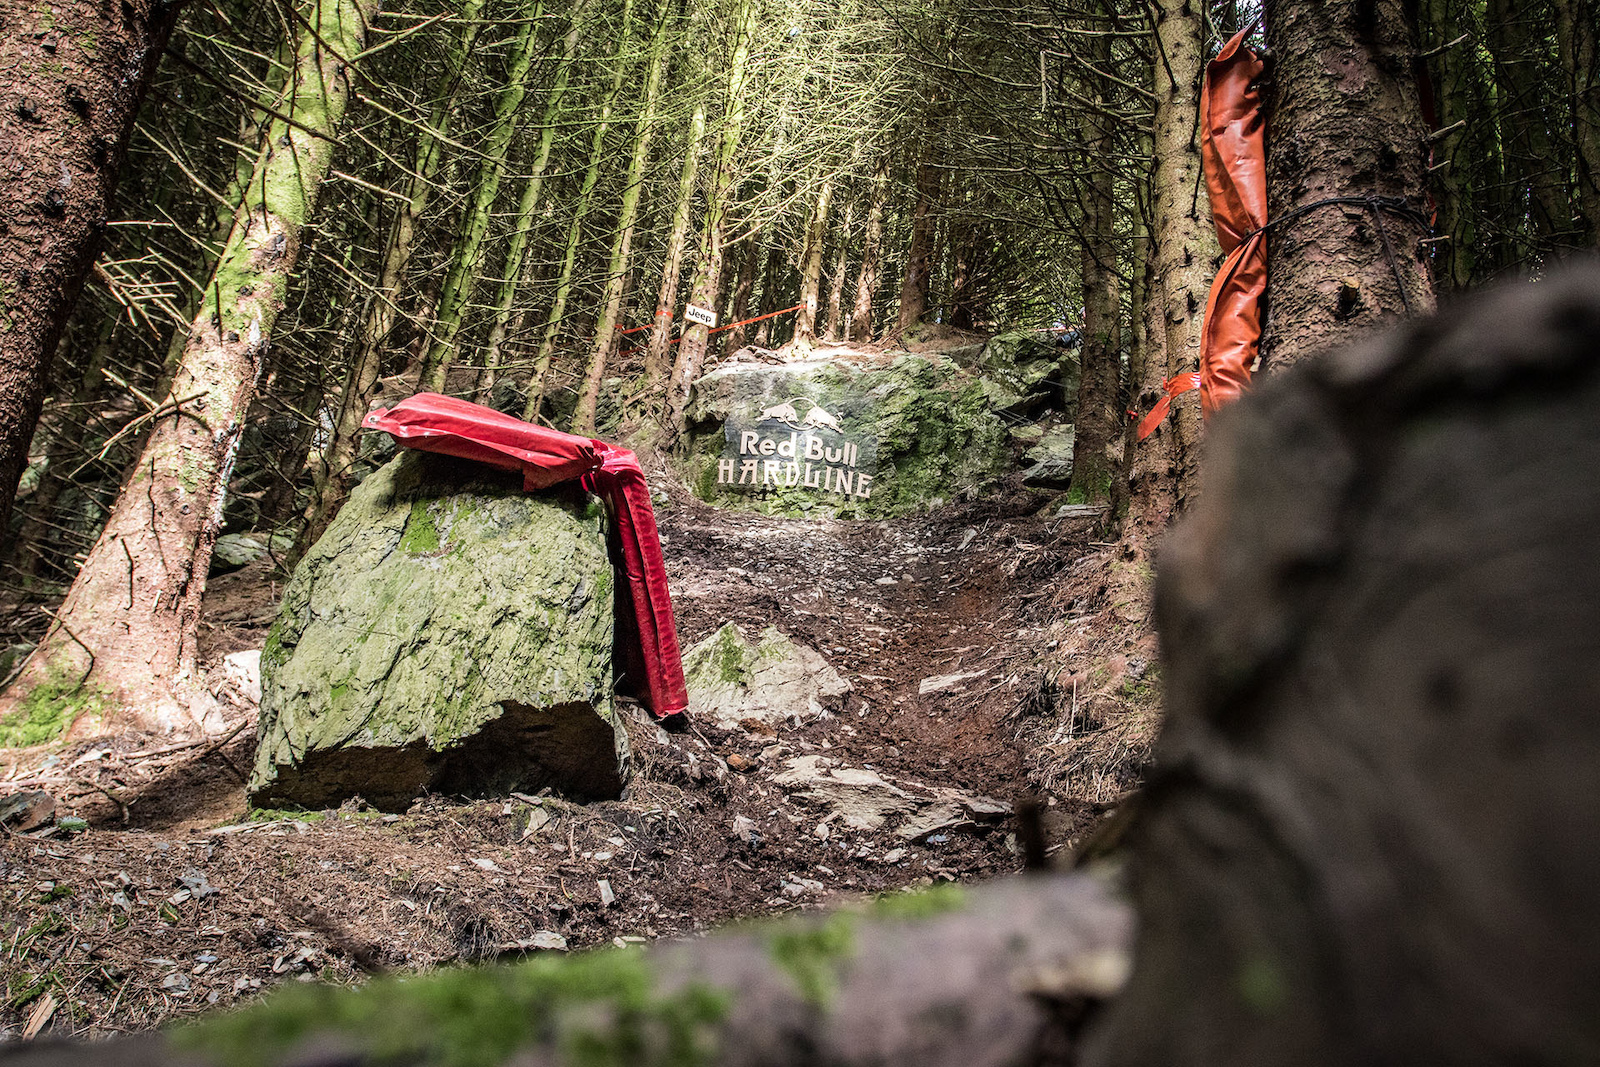 Hidden in the middle of the steep woods is this rock drop on any other course this would be considered a big feature at about 3m but this is RedBull Hardline.